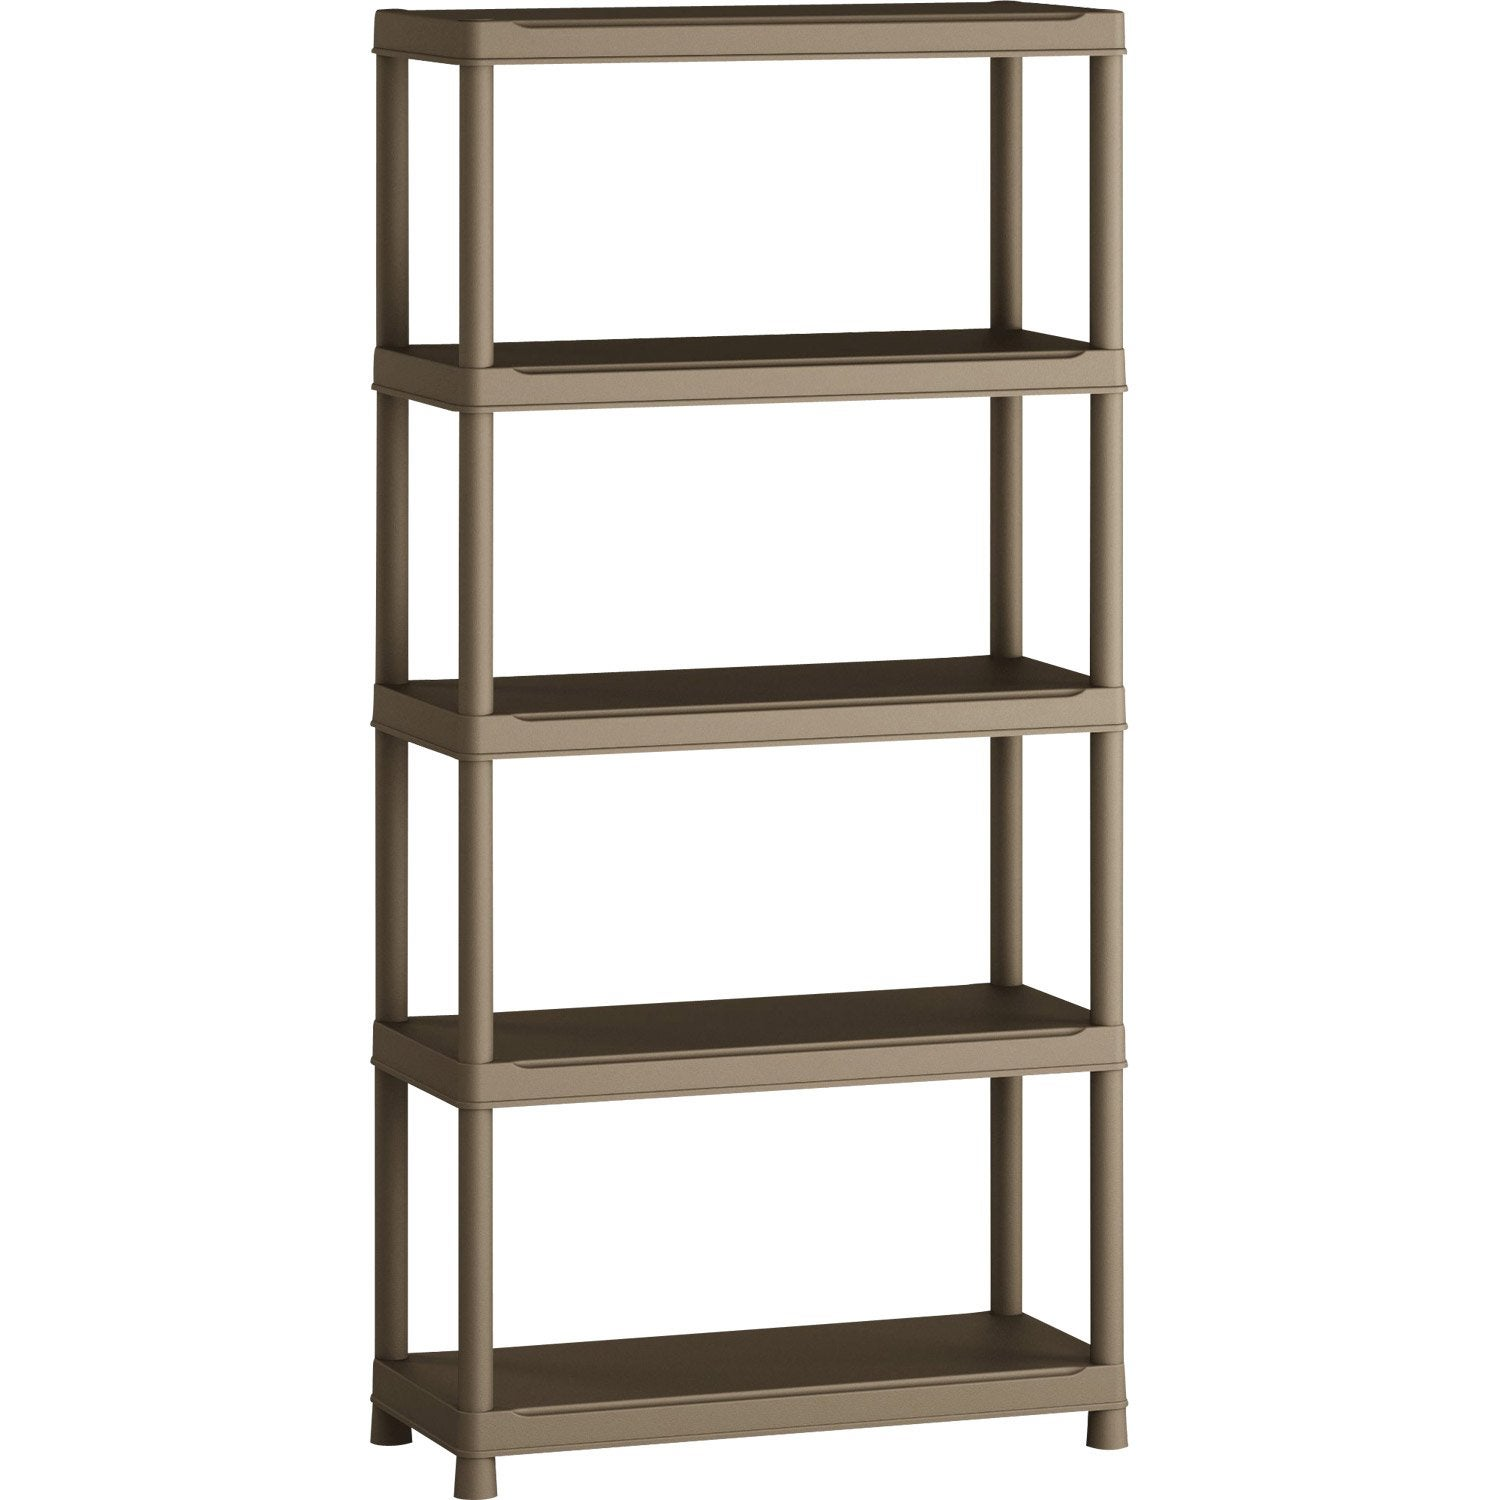 Etag re r sine spaceo 5 tablettes terre l90xh181xp40 cm leroy merlin - Leroy merlin etagere metal ...